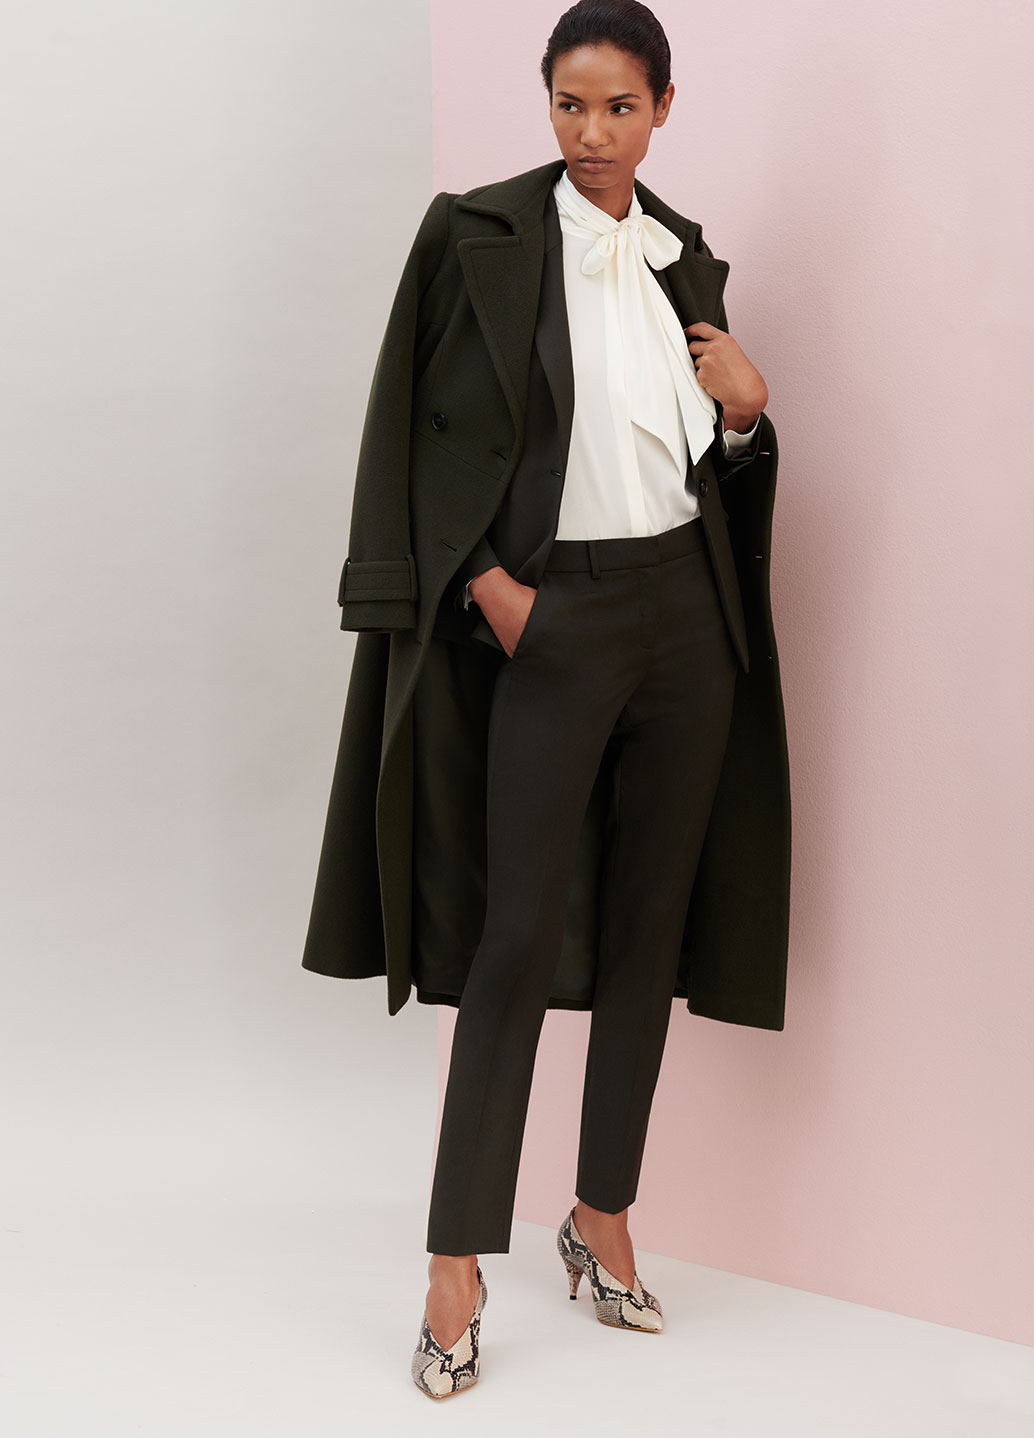 The London Collection by Hobbs London, luxury women's fashion.